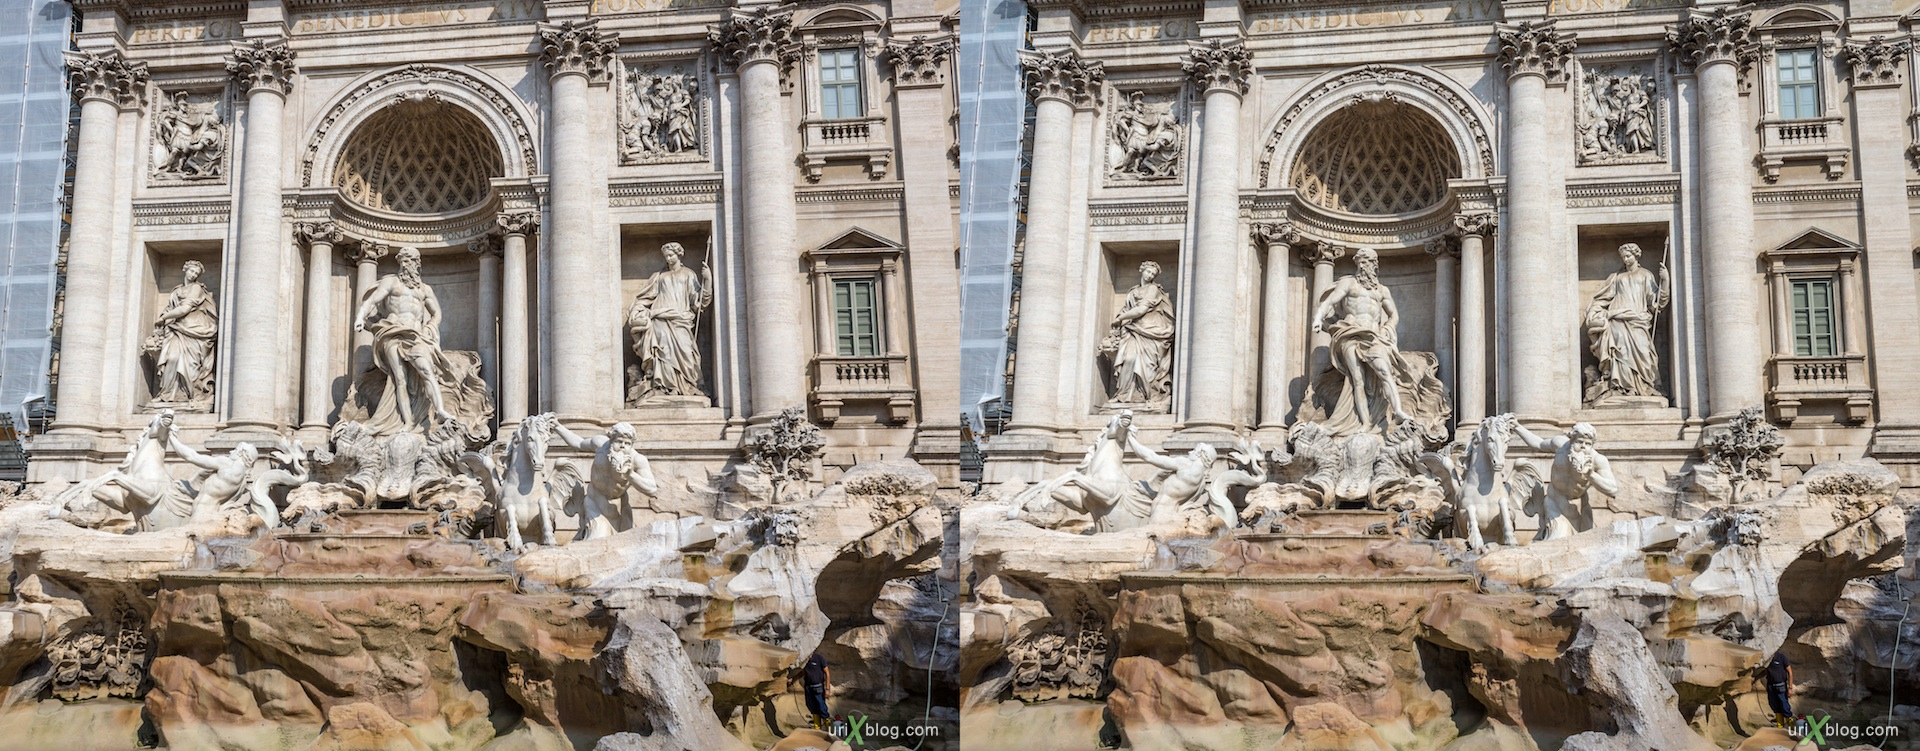 2012, Trevi fountain, Rome, Italy, 3D, stereo pair, cross-eyed, crossview, cross view stereo pair